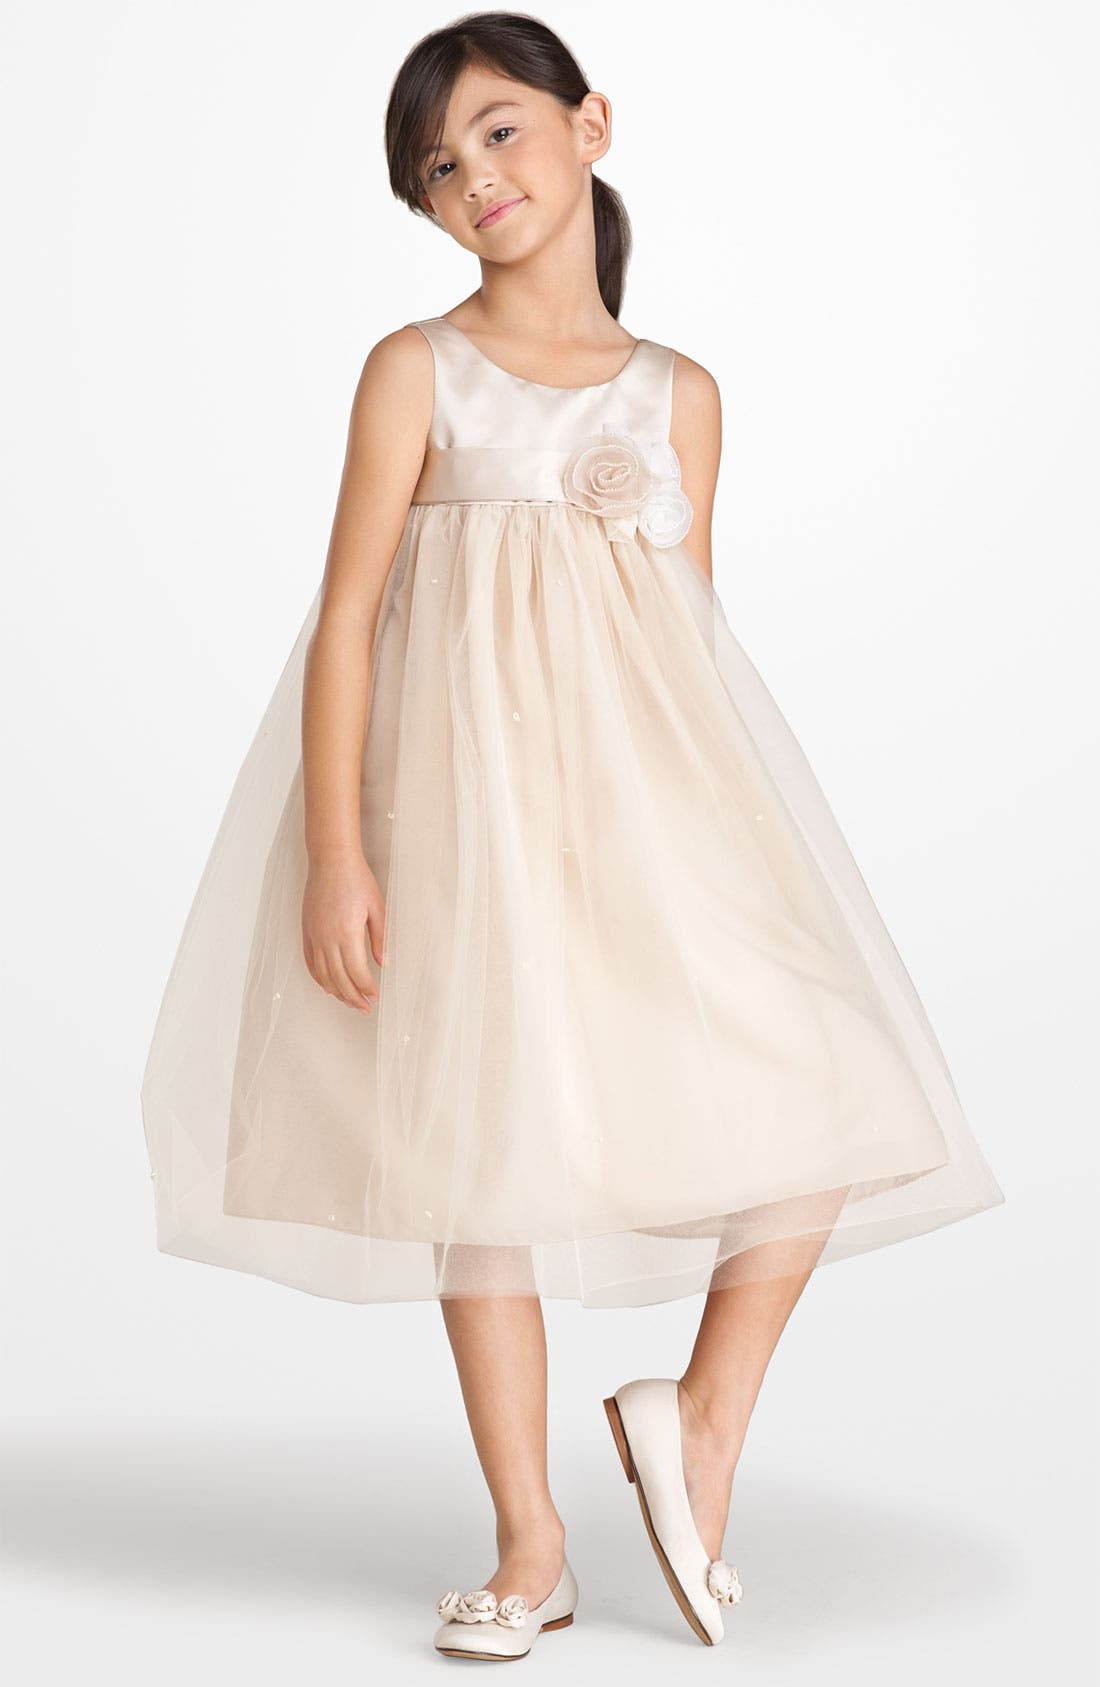 Alternate Image 1 Selected - Us Angels Sleeveless Satin & Tulle Dress (Little Girls)